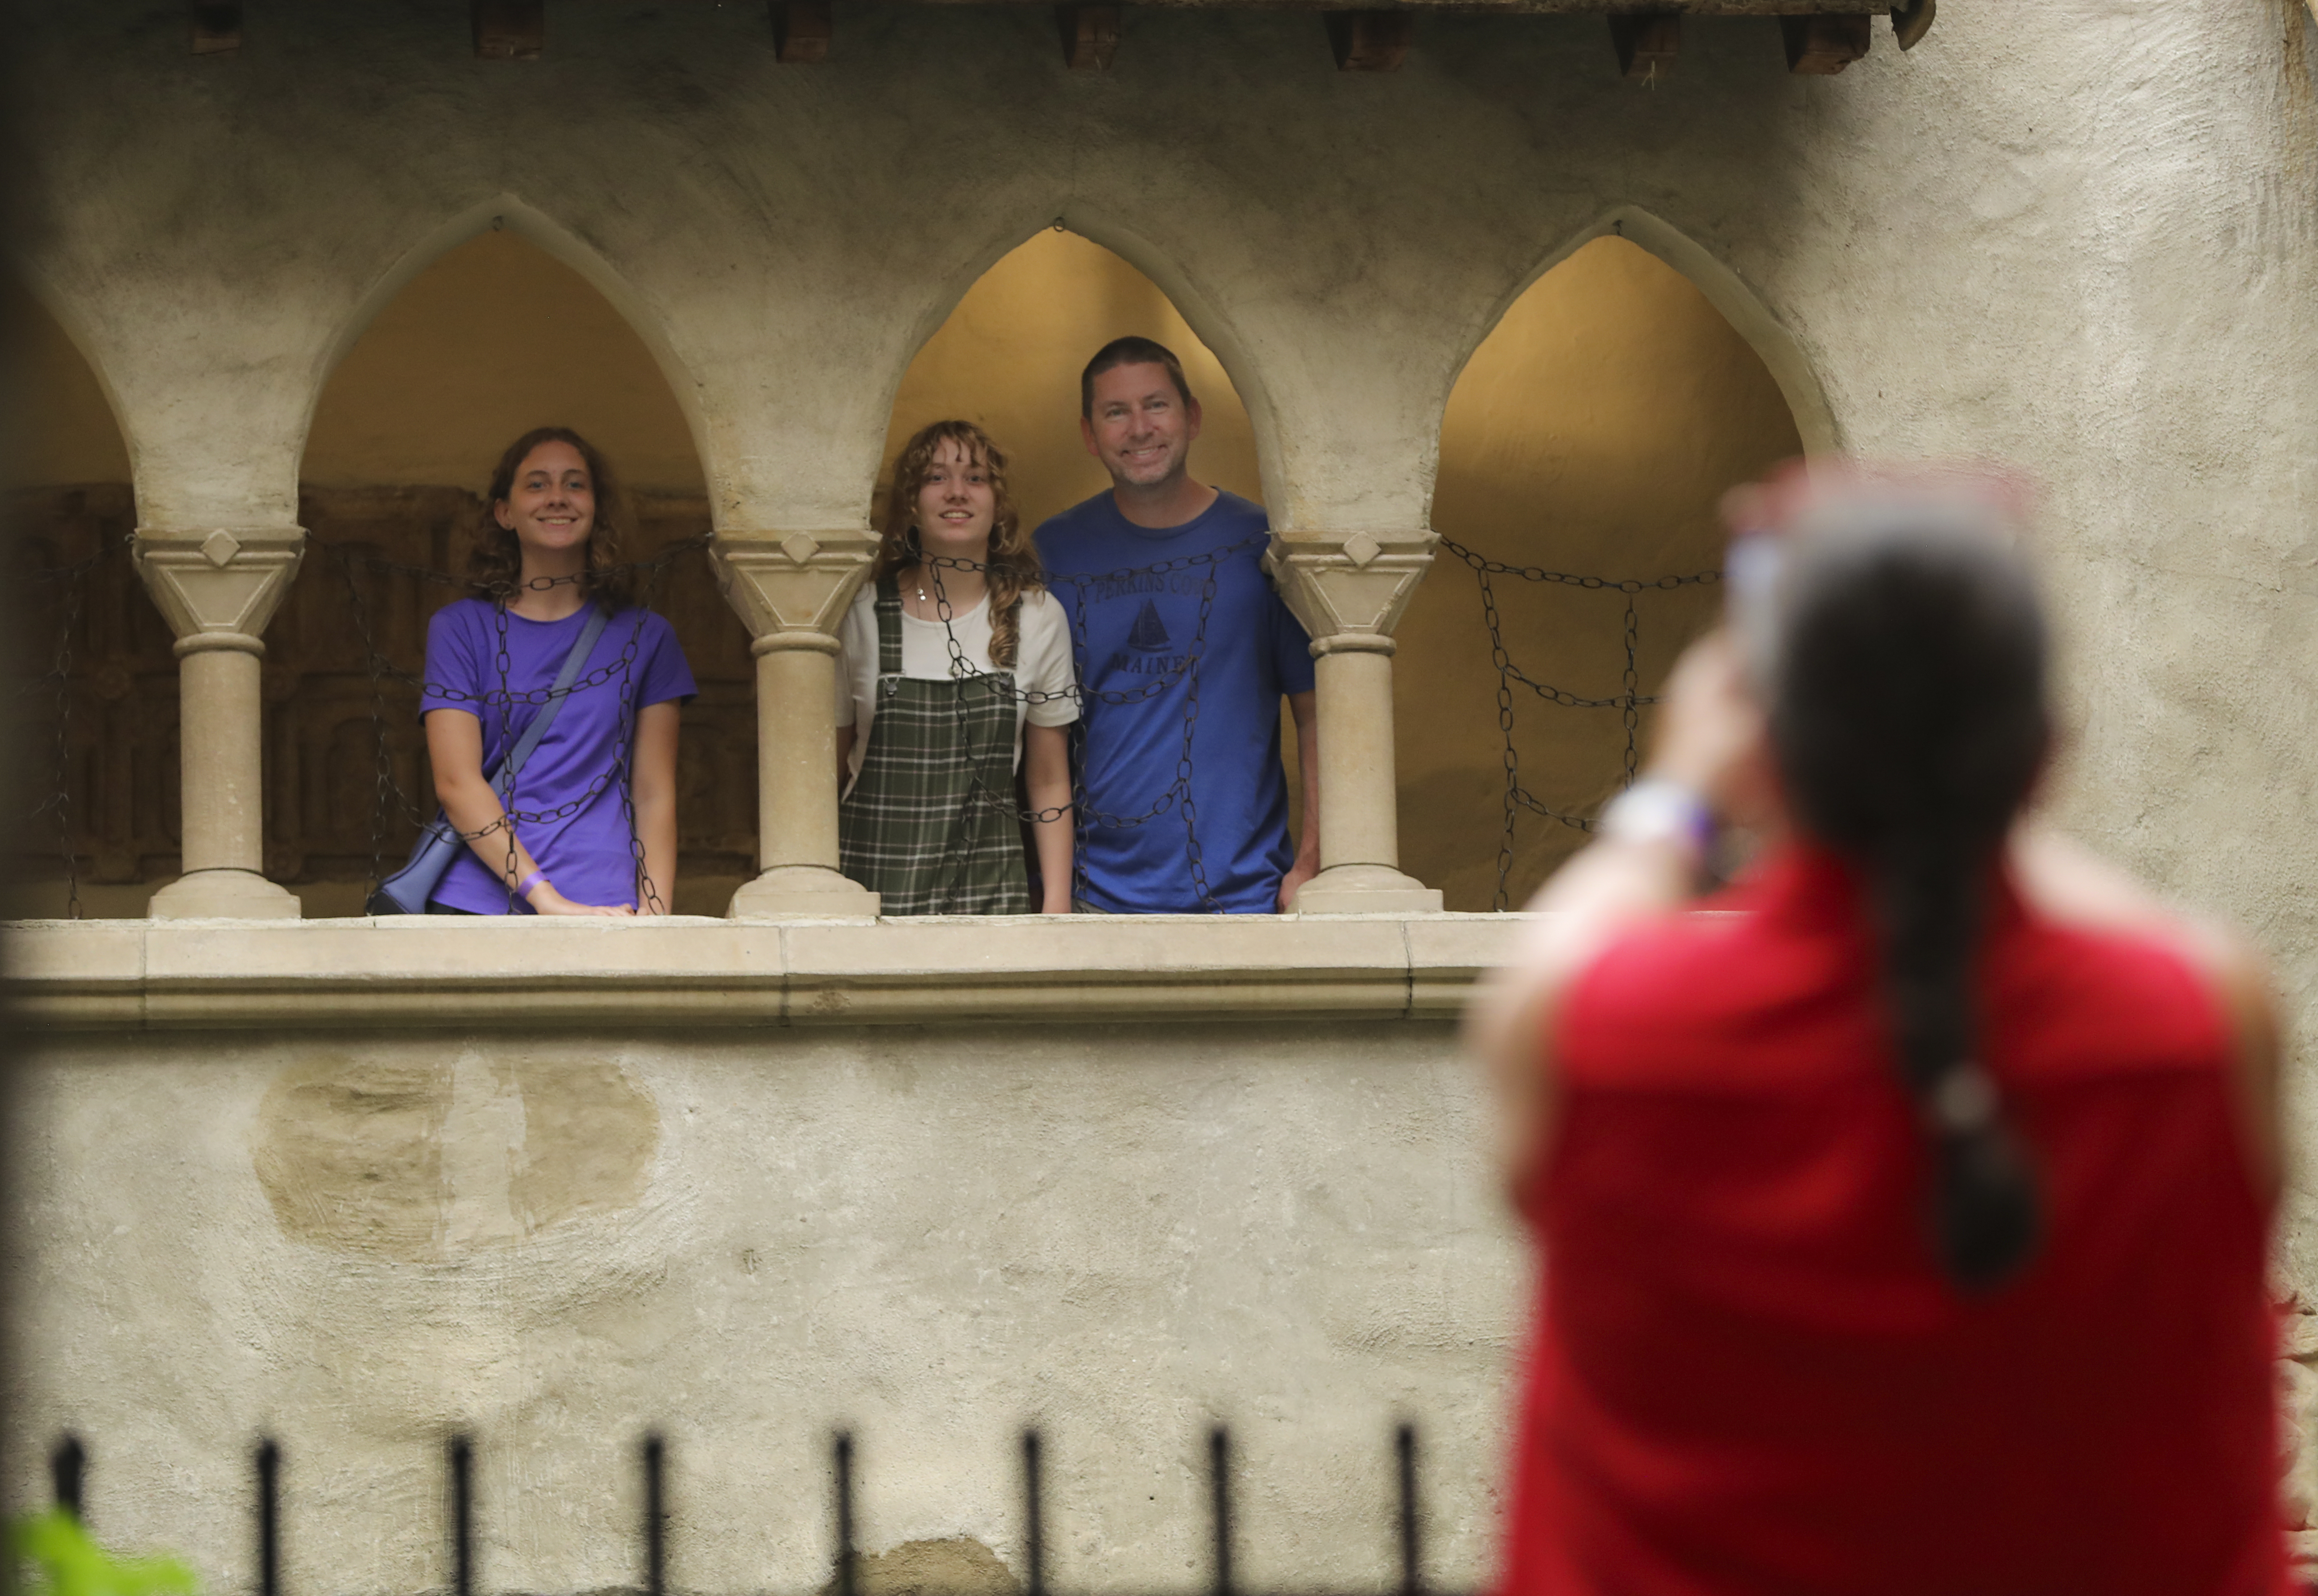 Lisa Ehleringer takes a photo of her daughters (left to right), Vivi, 17, Lizzy, 13, and Lisa's husband, Jeff Ehleringer, in the inner courtyard of the Hammond Castle Museum.